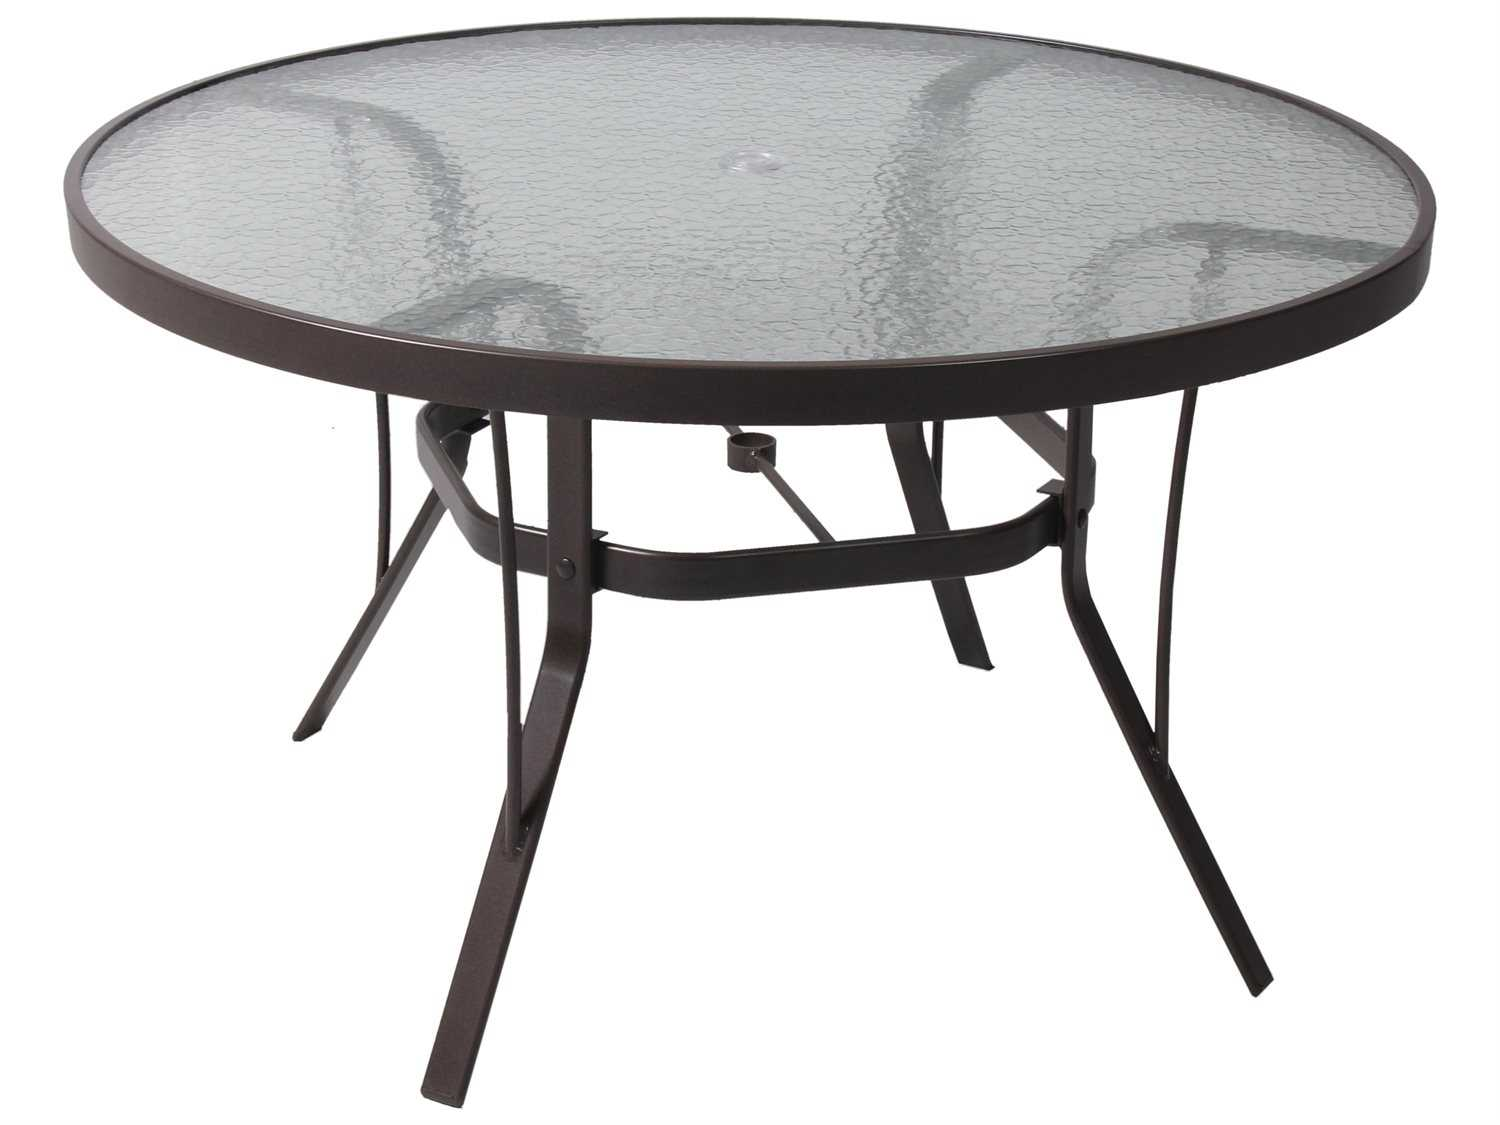 suncoast cast aluminum 42 39 39 round glass top dining table 42kd. Black Bedroom Furniture Sets. Home Design Ideas